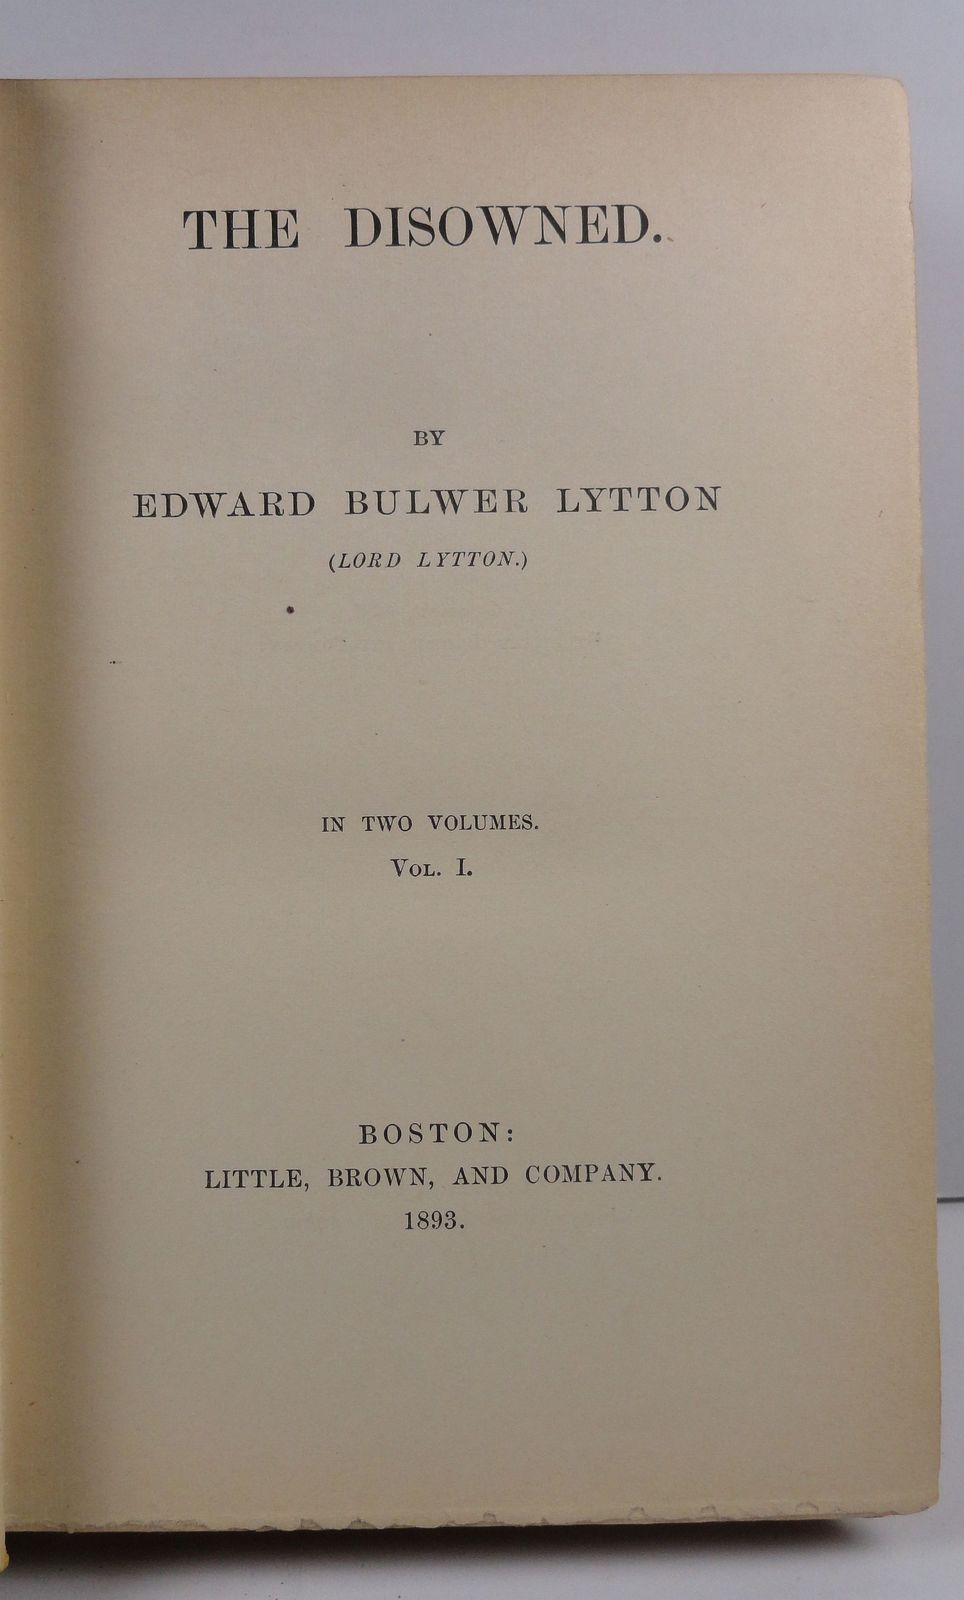 The Disowned Volume 1 Edward Bulwer Lytton 1893 Little Brown